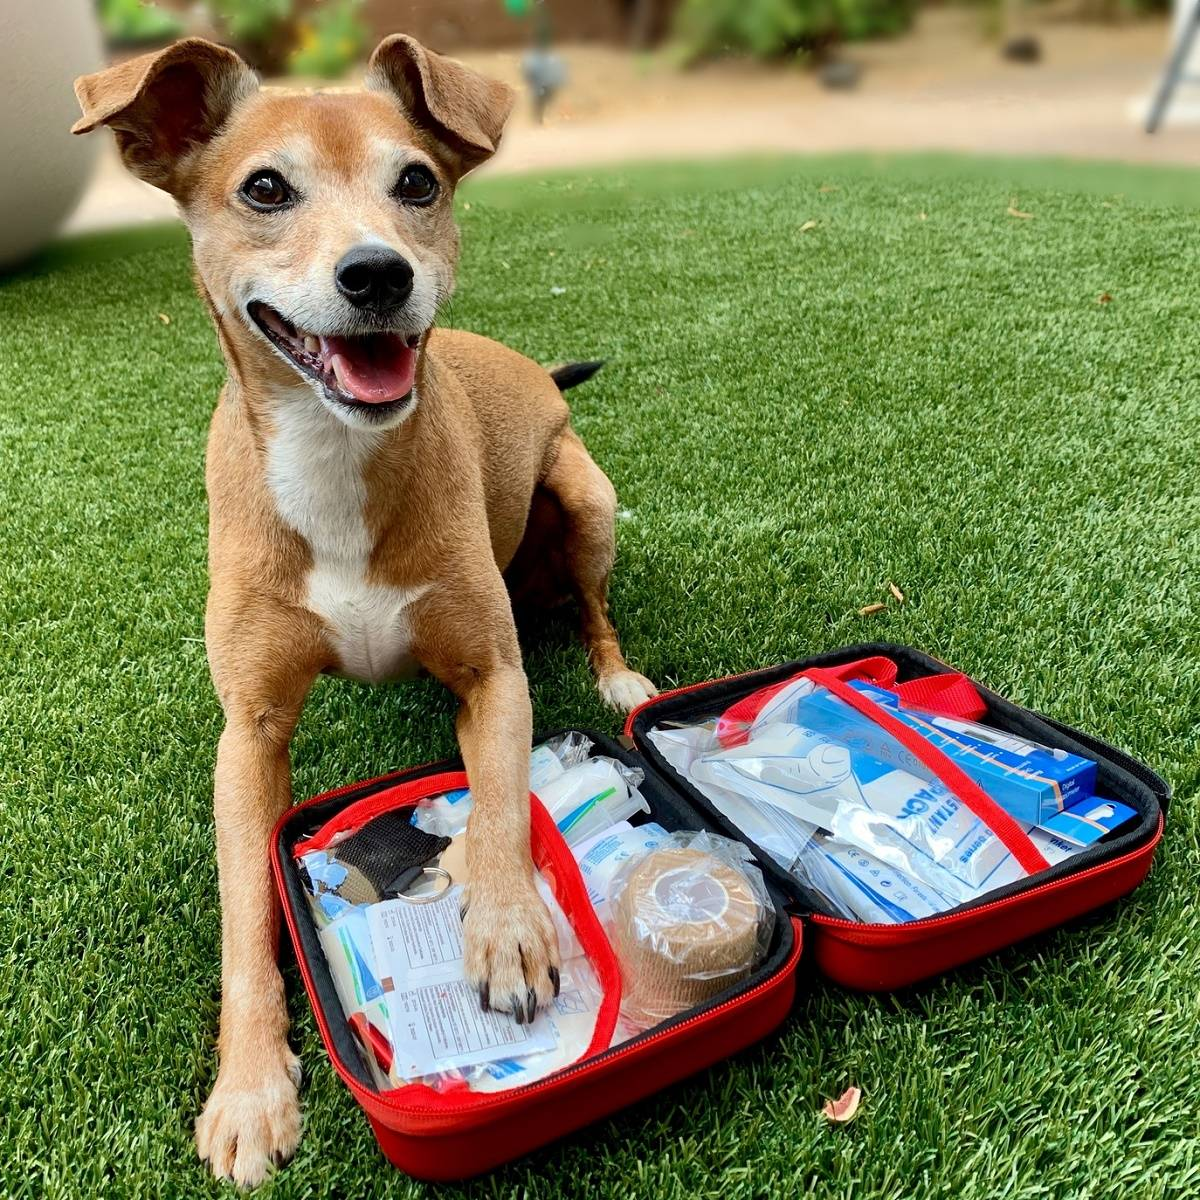 Deluxe Pet First Aid Kit 60+ Emergency Items, Veterinarian Approved image 7